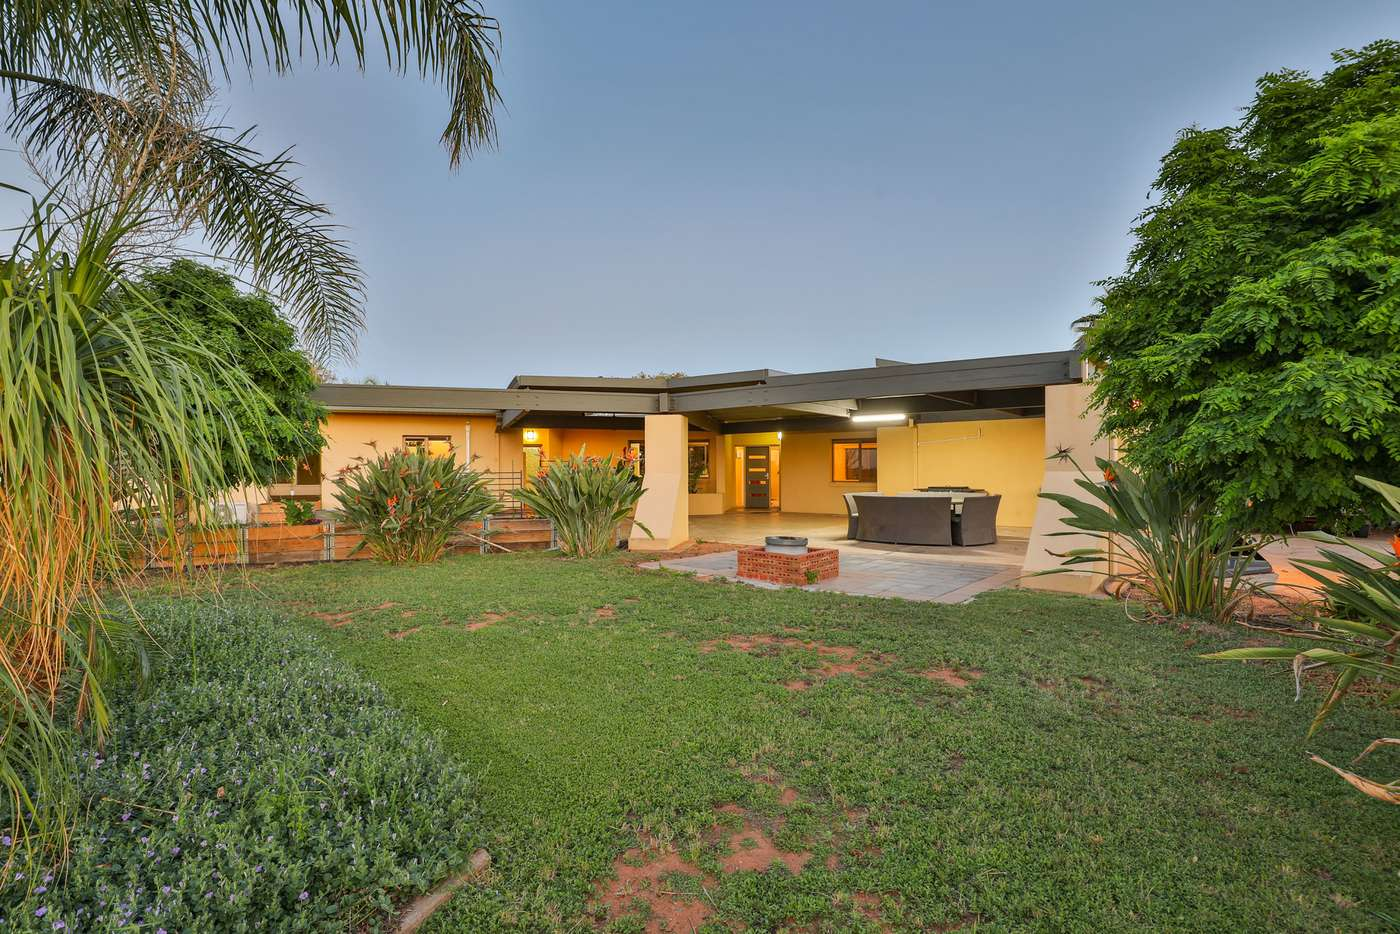 Main view of Homely house listing, 128 Cowra Avenue Extension, Irymple VIC 3498